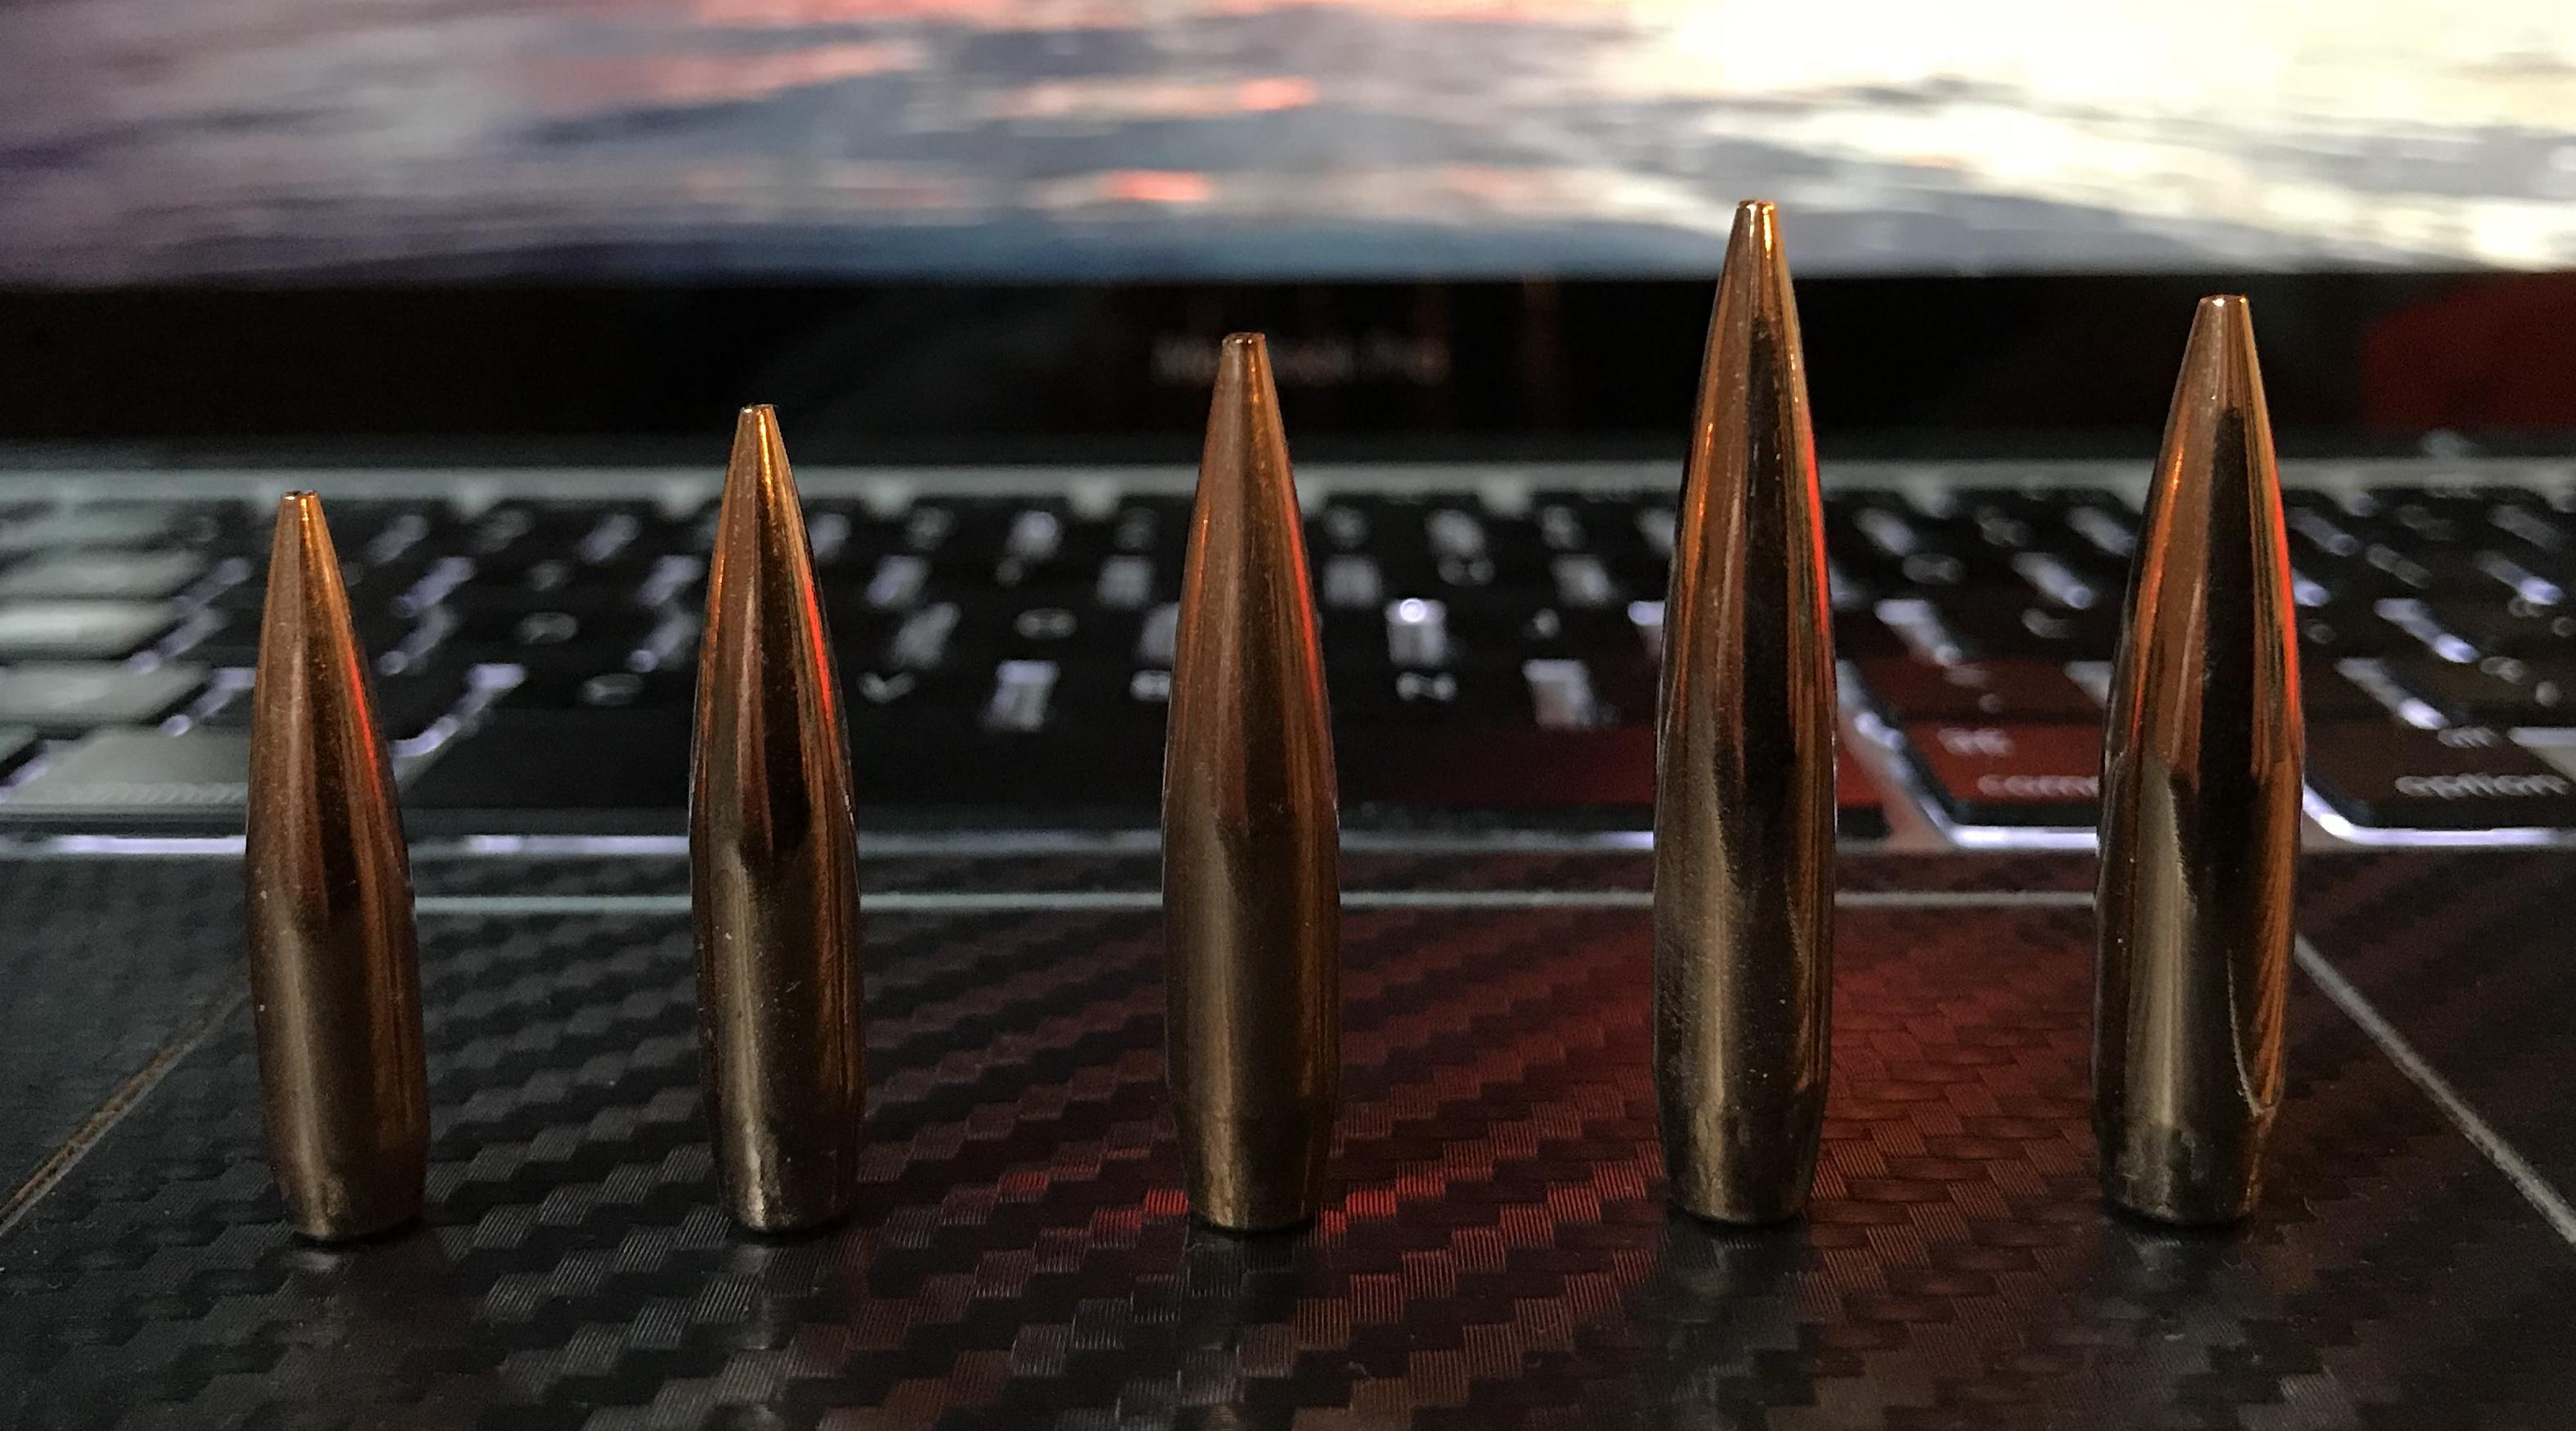 28 nosler with 195 vs 300 win mag with 215 hybrid | Page 2